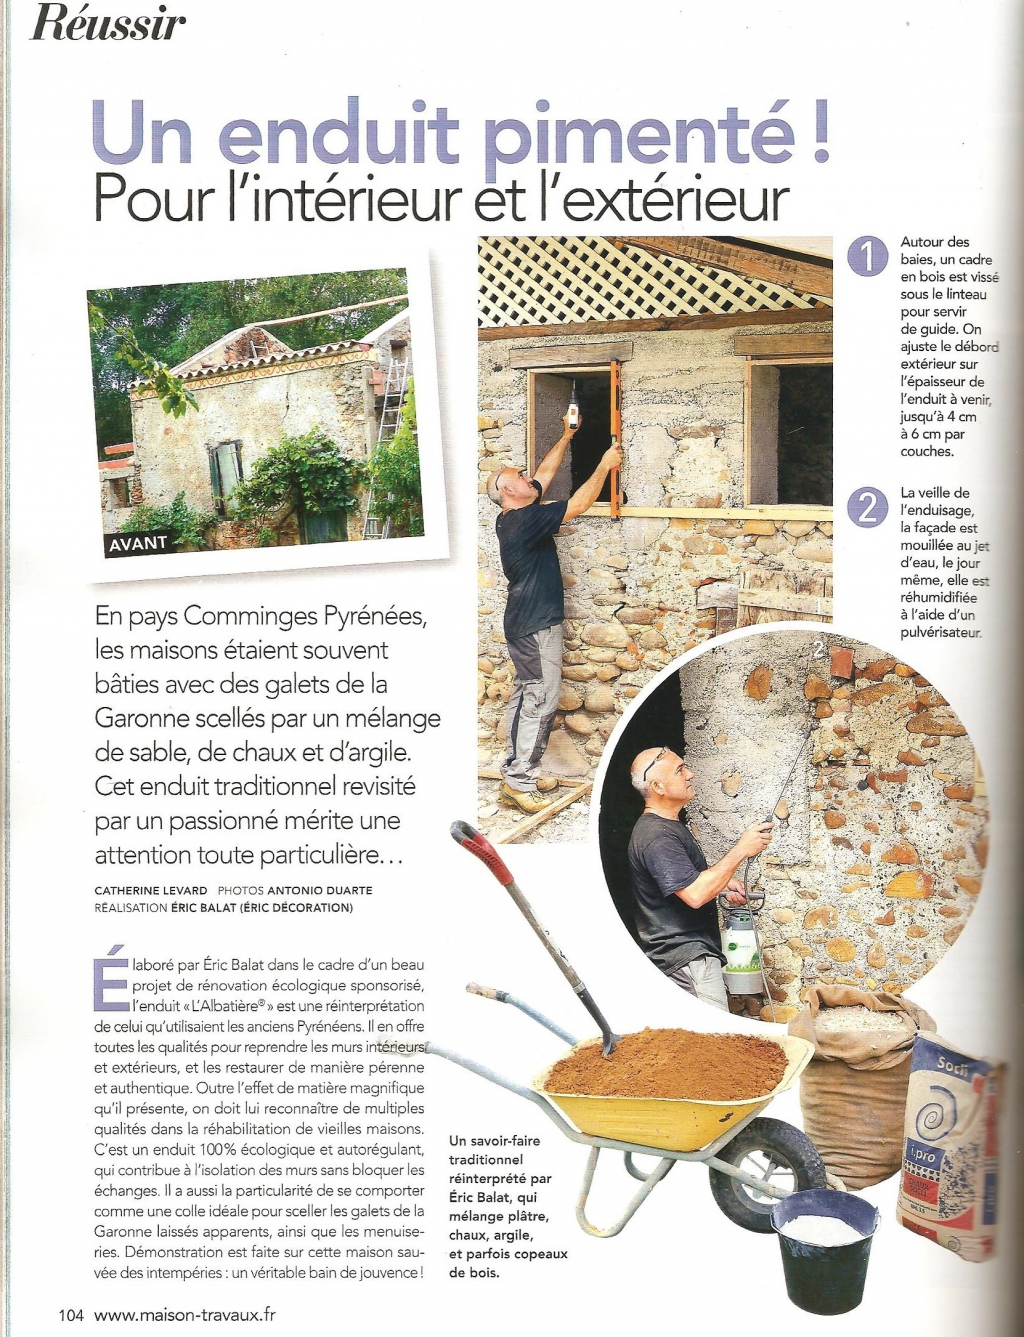 la fermette sponsoris e de cuguron sur le magazine maison travaux n 262 janvier 2015 co. Black Bedroom Furniture Sets. Home Design Ideas